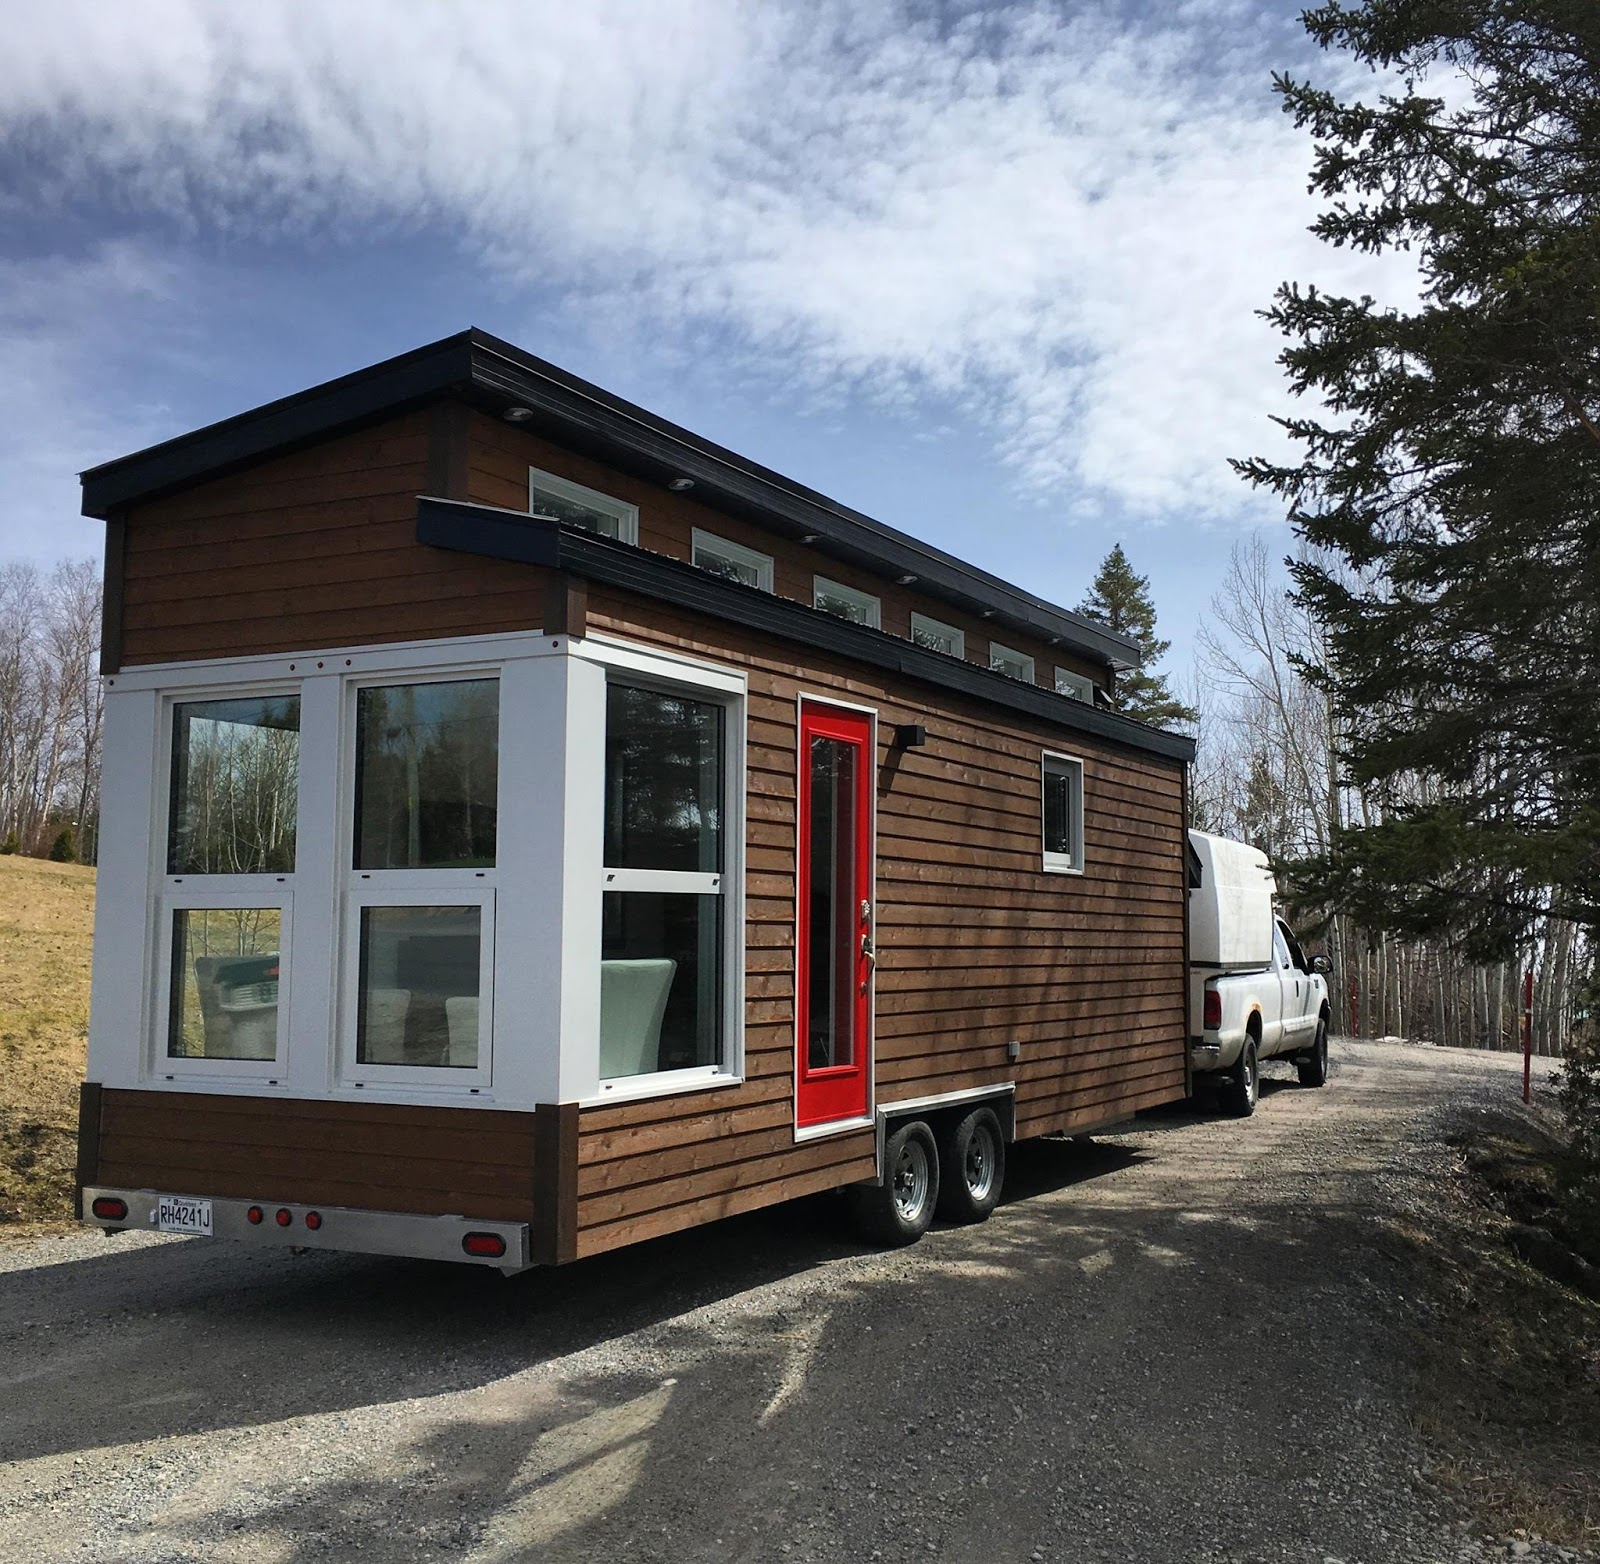 check out this beautiful modern home from a new tiny house builder vivre en mini live in minilittle the company specializes in tiny homes on both - Tiny House Builder